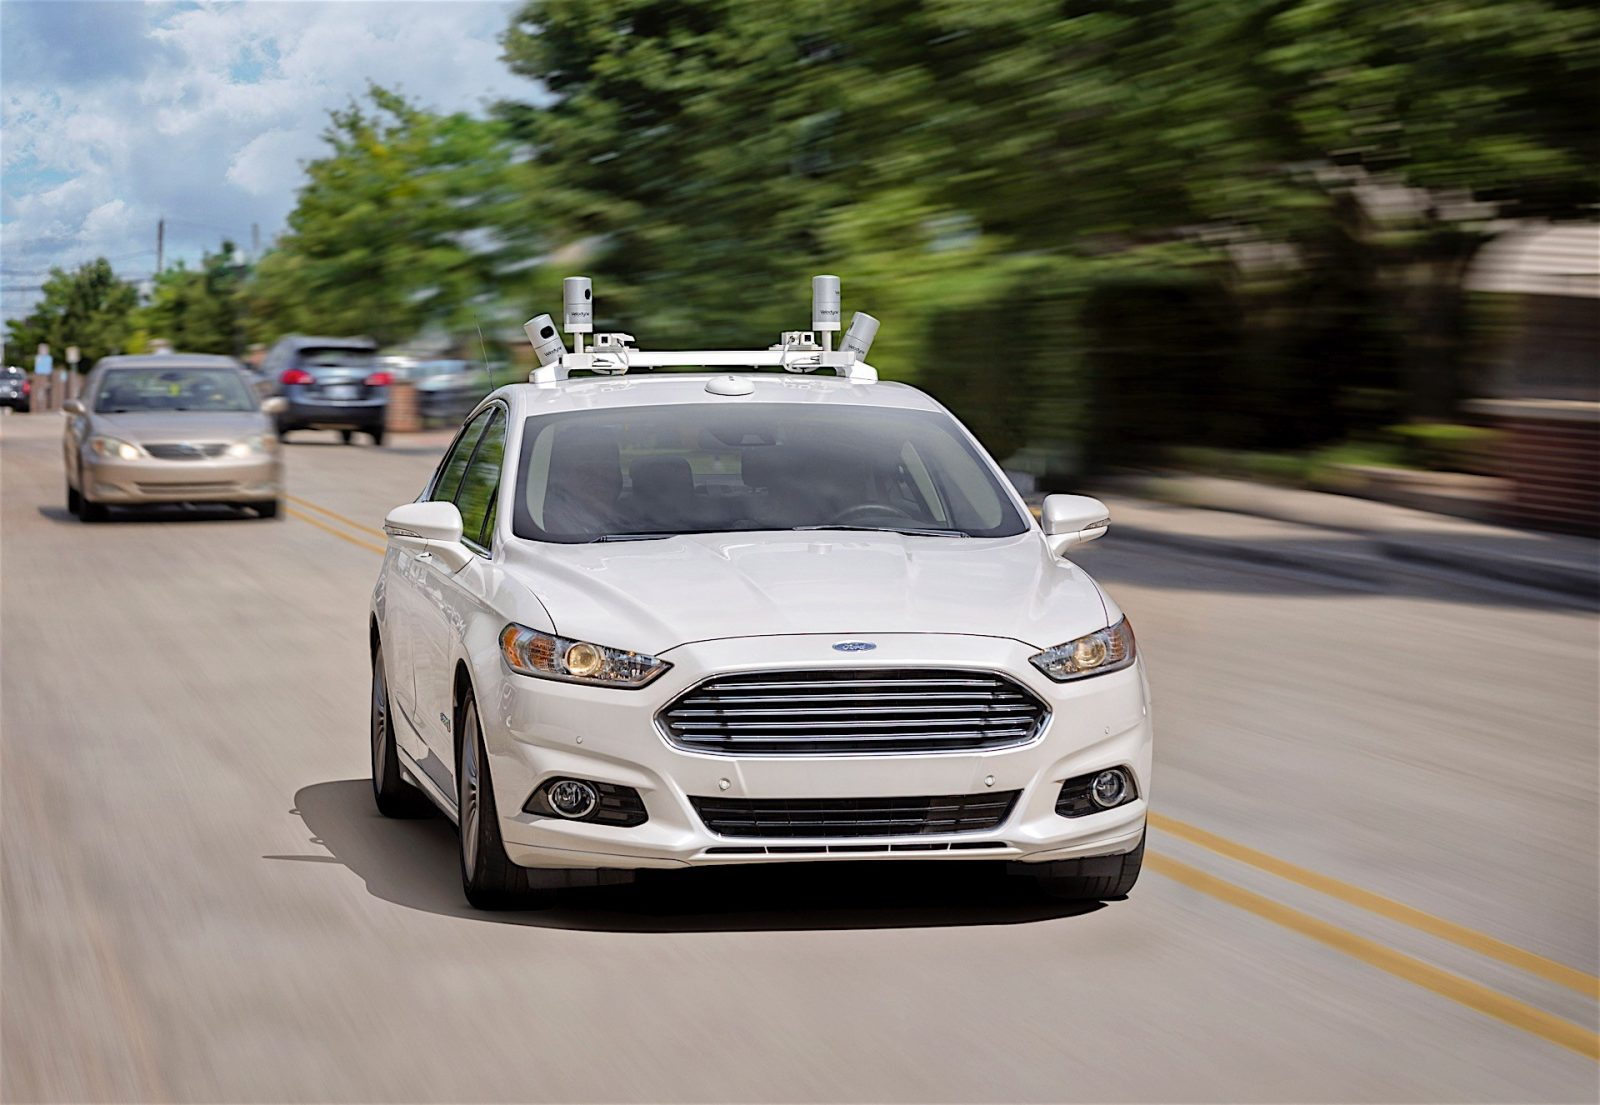 ford-wants-to-sell-driverless-cars-to-the-public-by-2025-ceo-says-111160_1